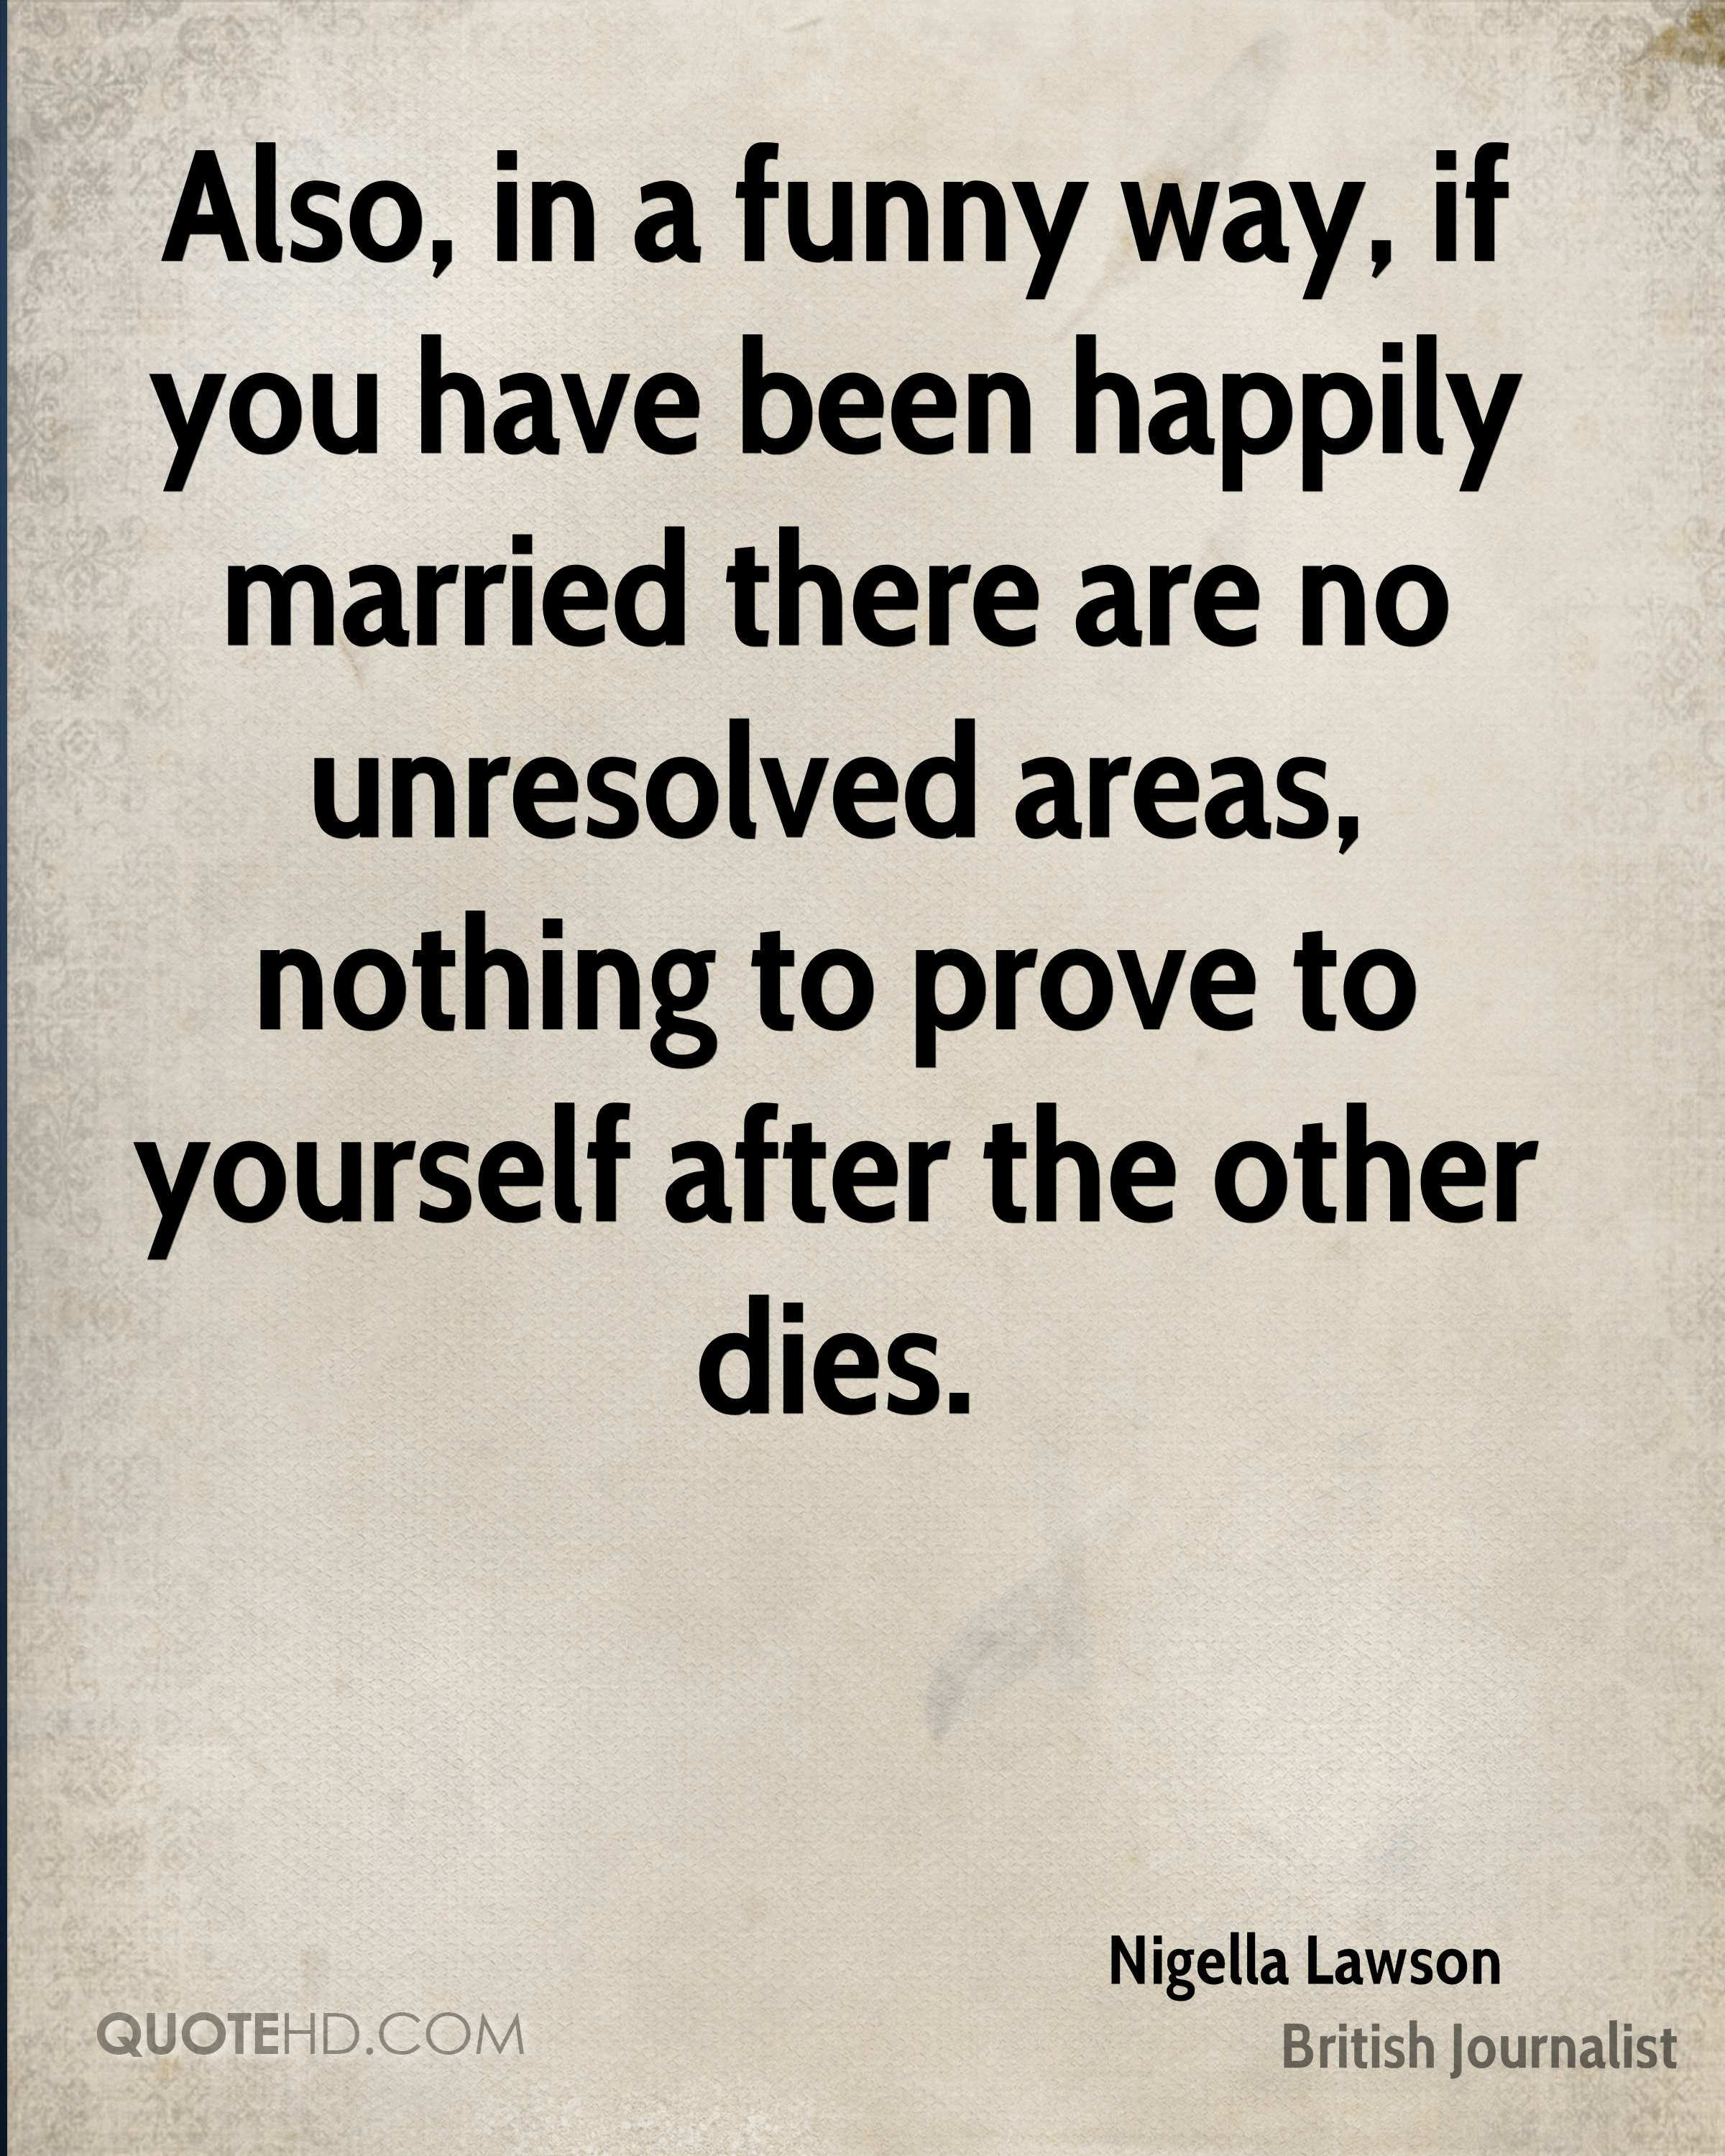 Also, in a funny way, if you have been happily married there are no unresolved areas, nothing to prove to yourself after the other dies.